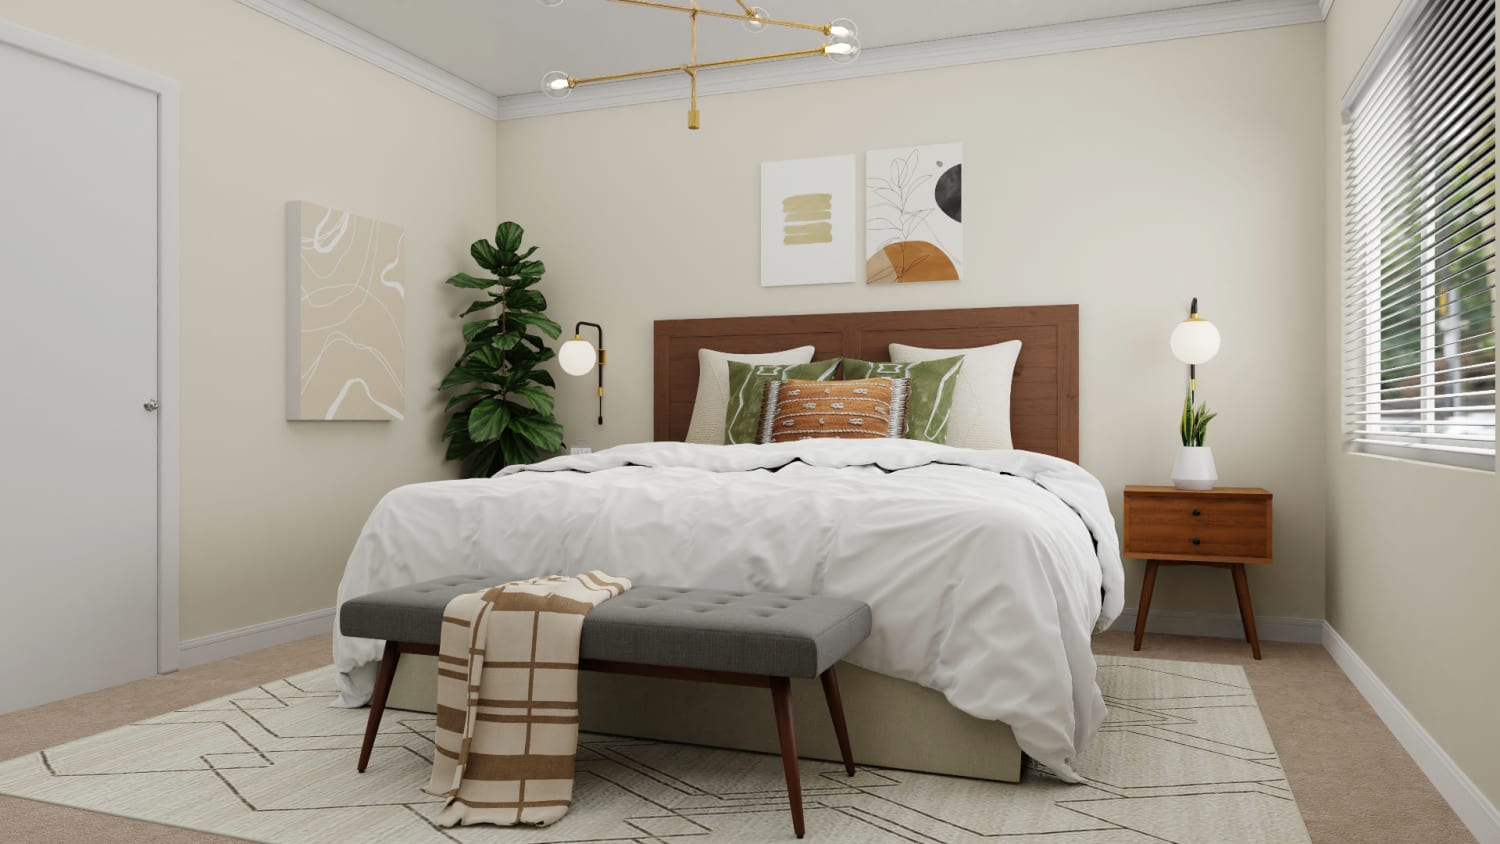 Minimalist Mid Century Bedroom With Boho Inspired Palettes By Spacejoy